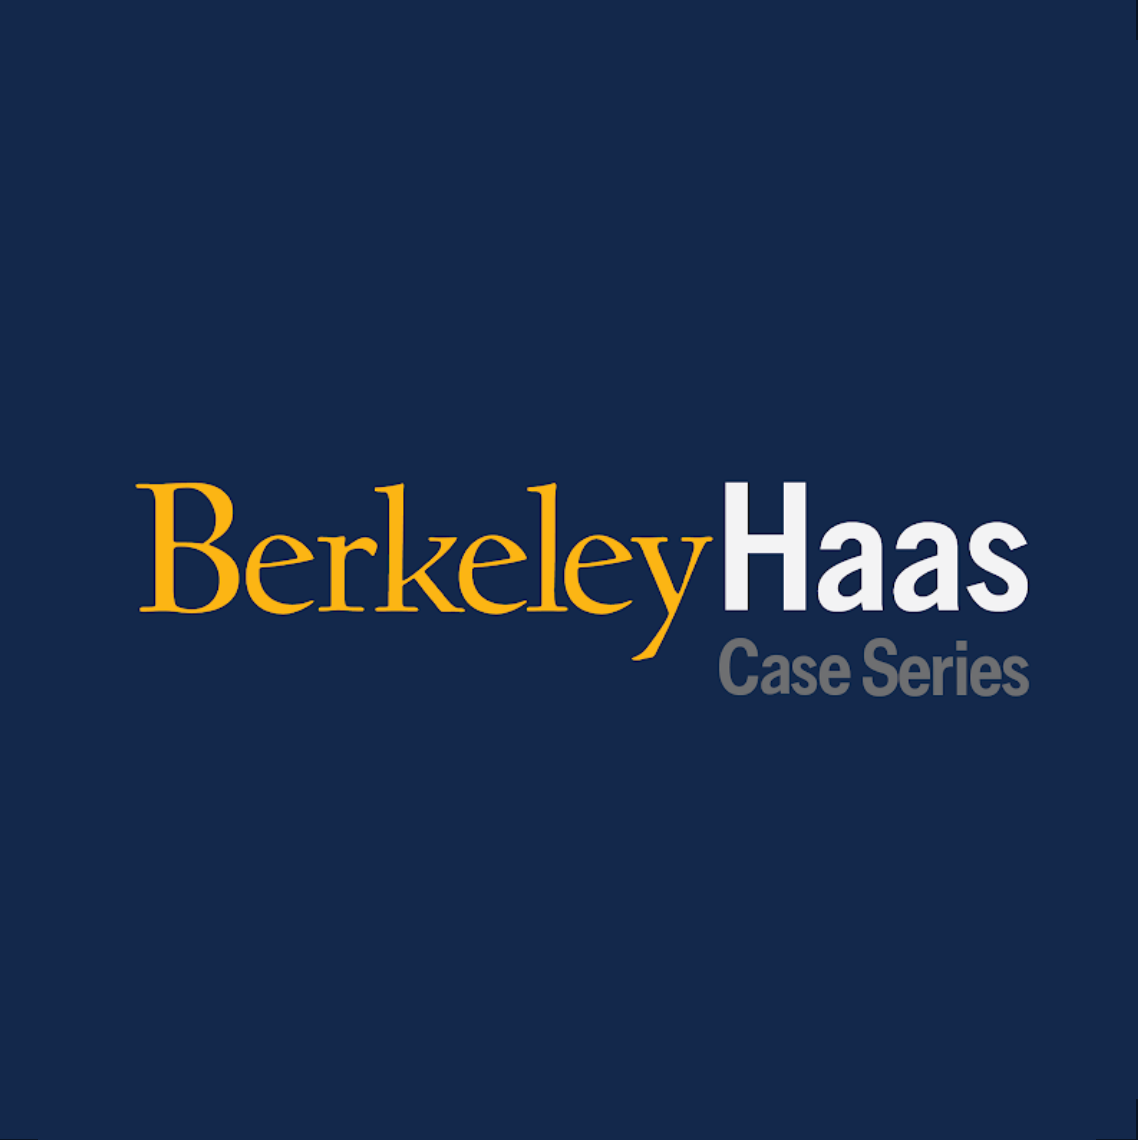 Berkeley Haas Case Series